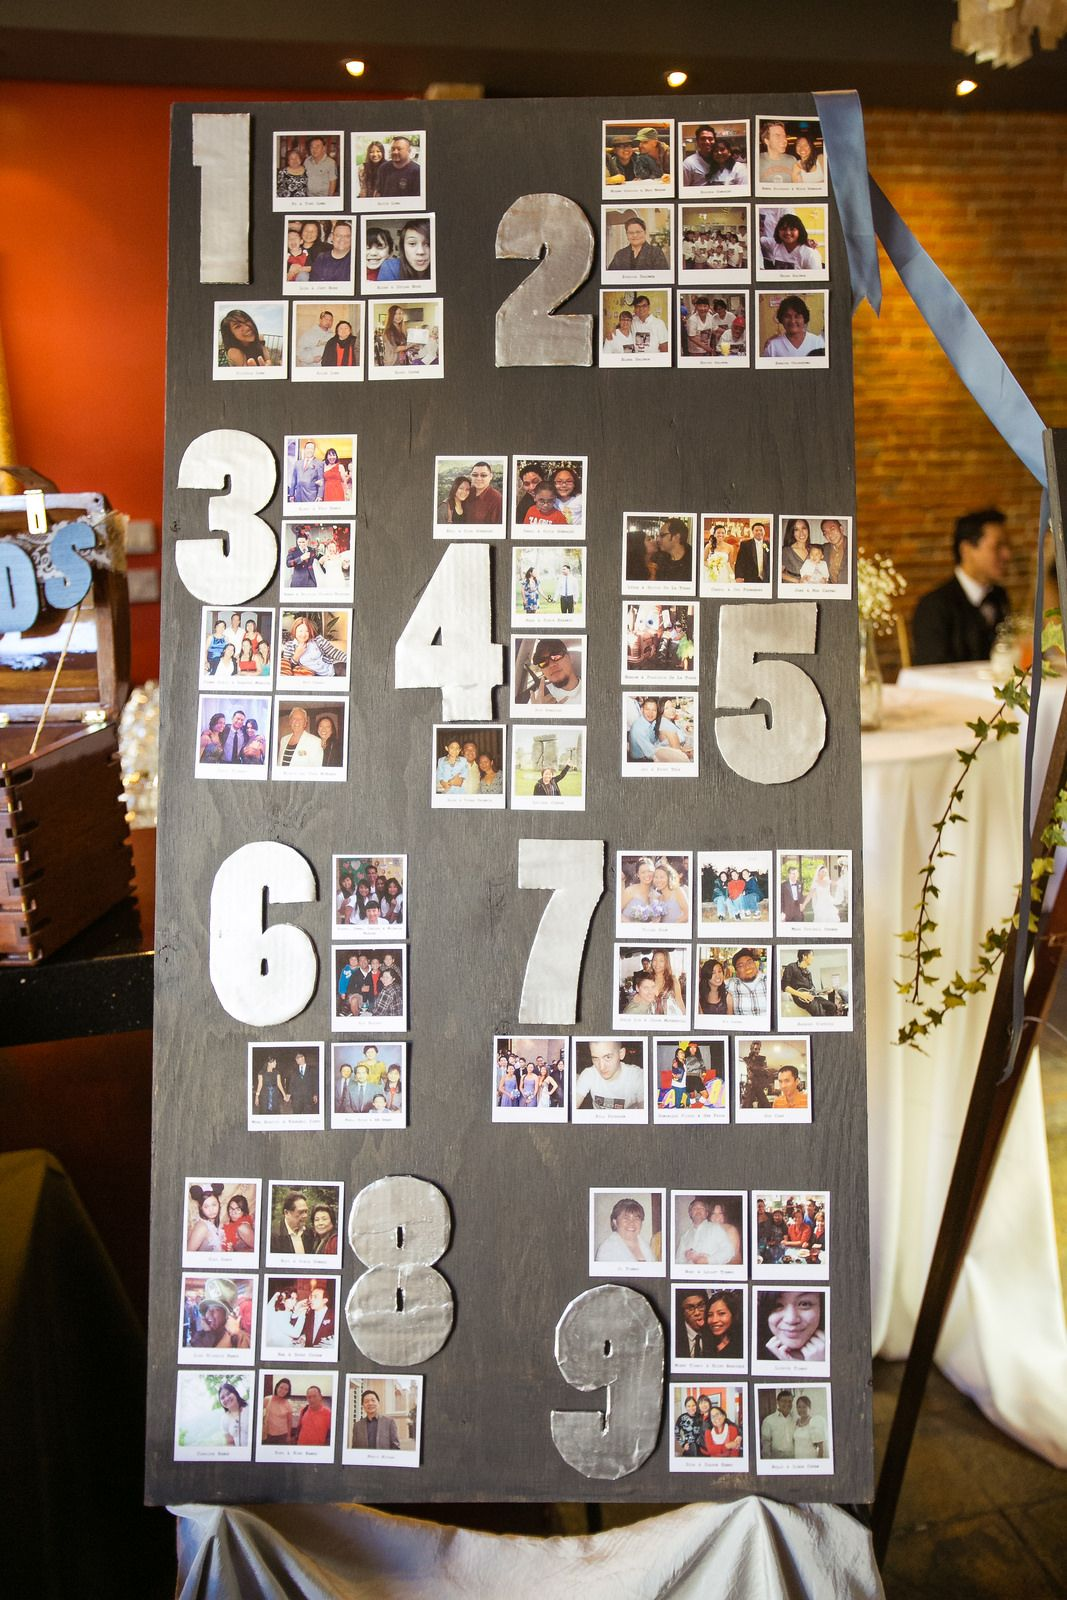 Use Snapshots Of Your Guests To Assign Seating Offbeat Bride Seating Chart Wedding Creative Seating Cards Wedding Reception Seating